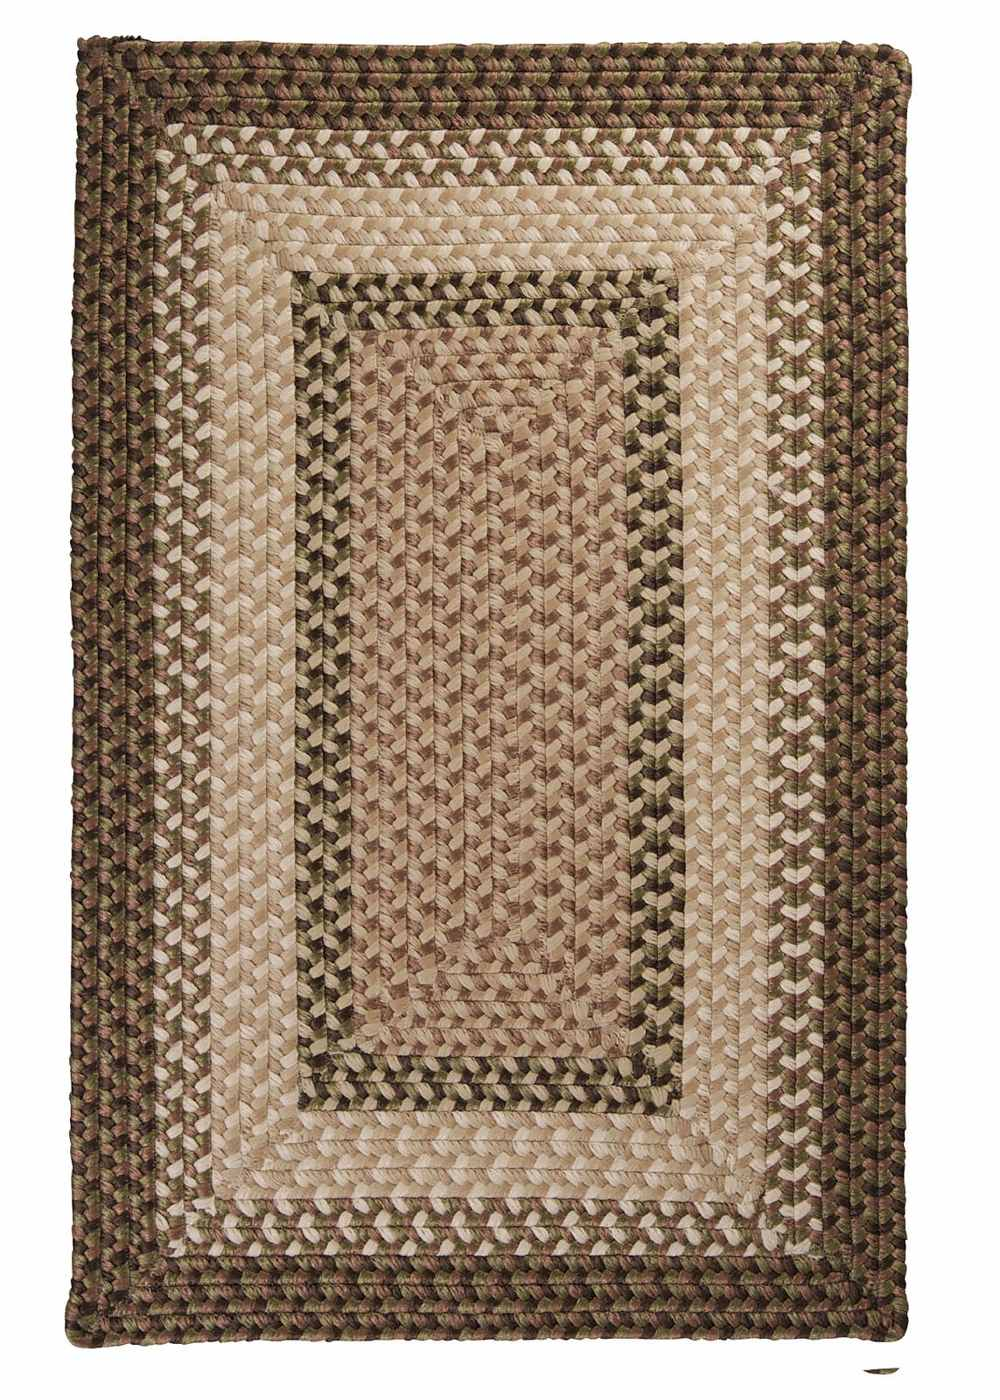 Super Area Rugs 8ft. x 11ft. Indoor/Outdoor Reversible Braided Rug Spruce Green Color (8x11) at Sears.com